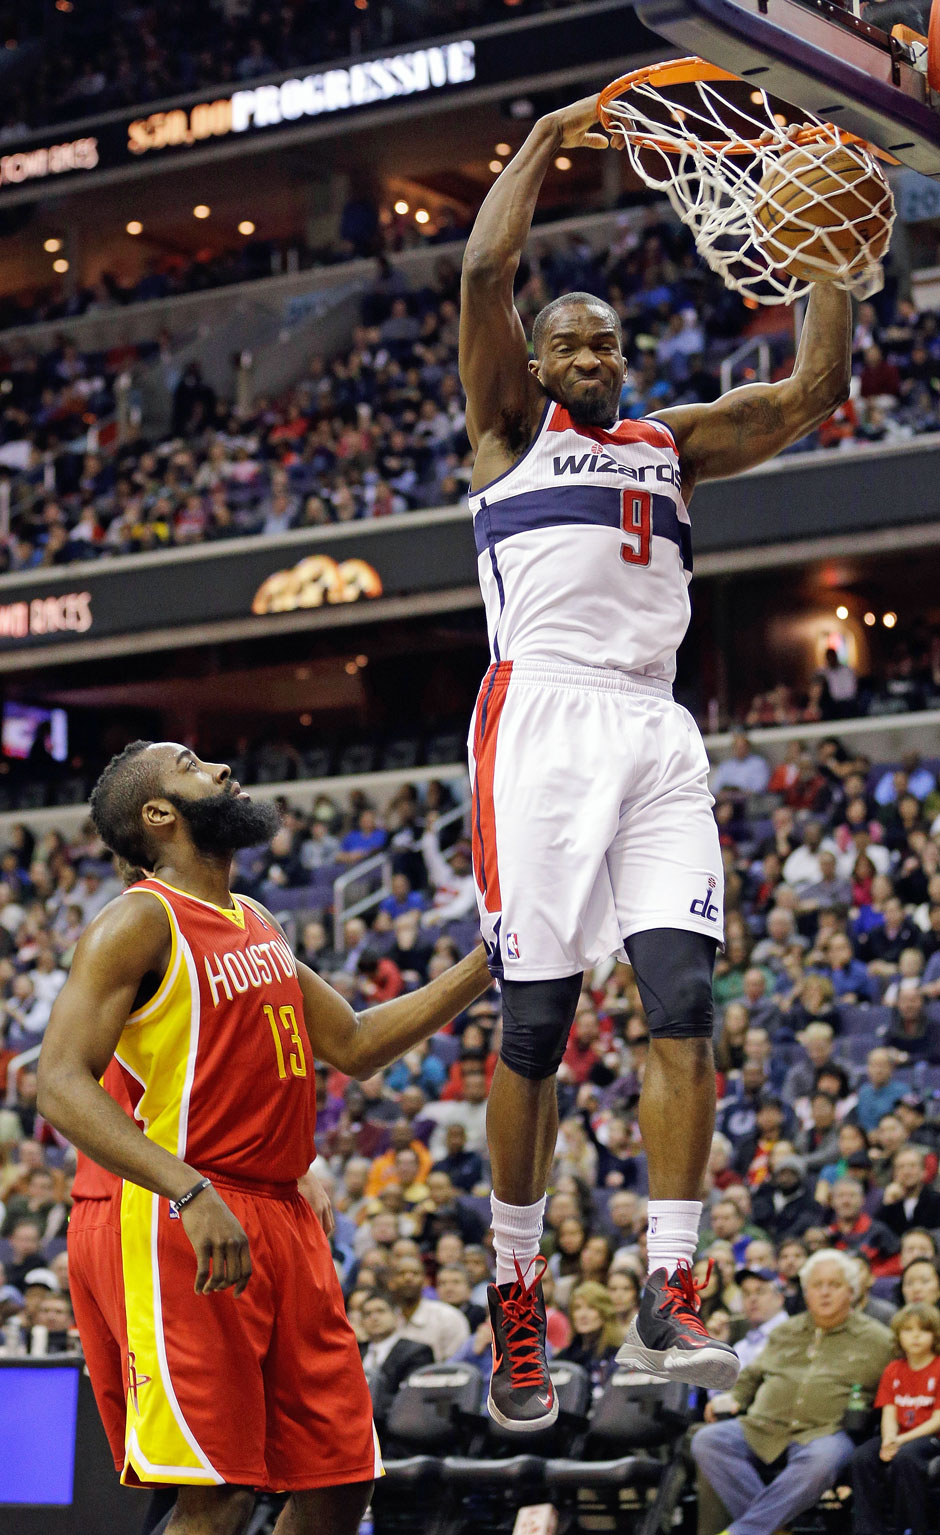 Bank: Martell Webster (Guard/Forward, 11,4 Punkte, 42,2 % Dreier)